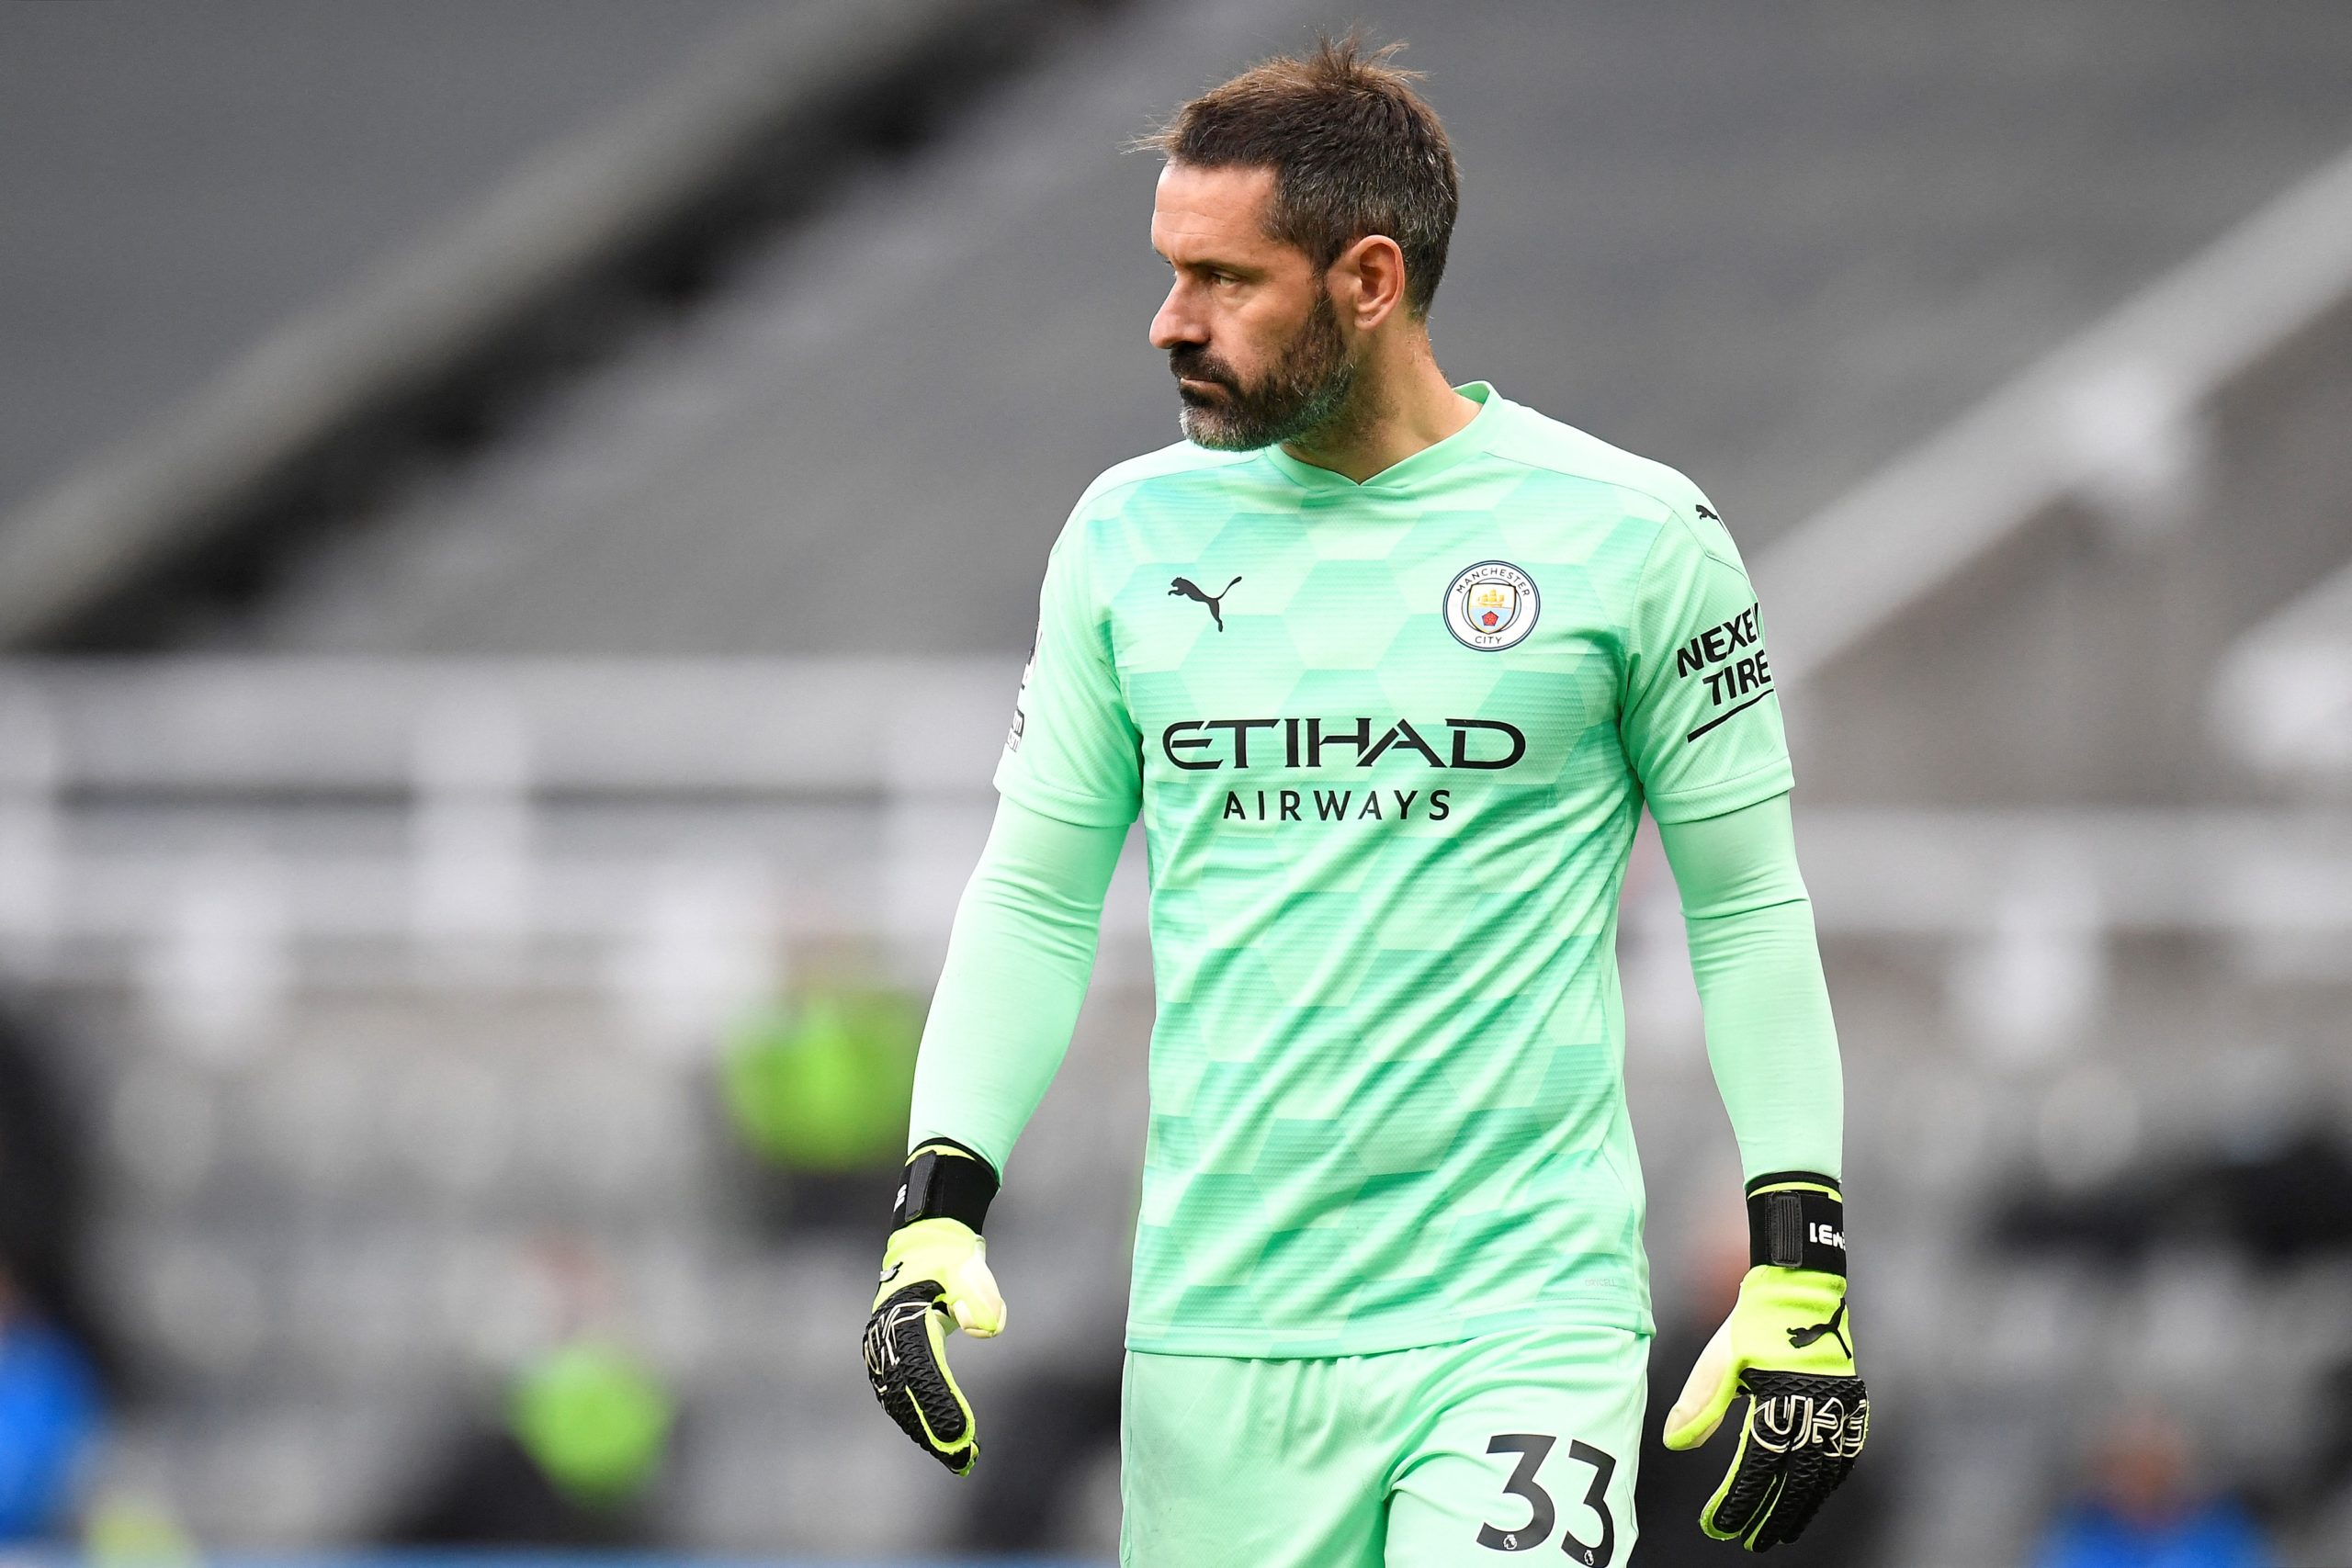 Report: Guardiola wants 'another captain' to finalise Man City position after loan spell - The Boot Room